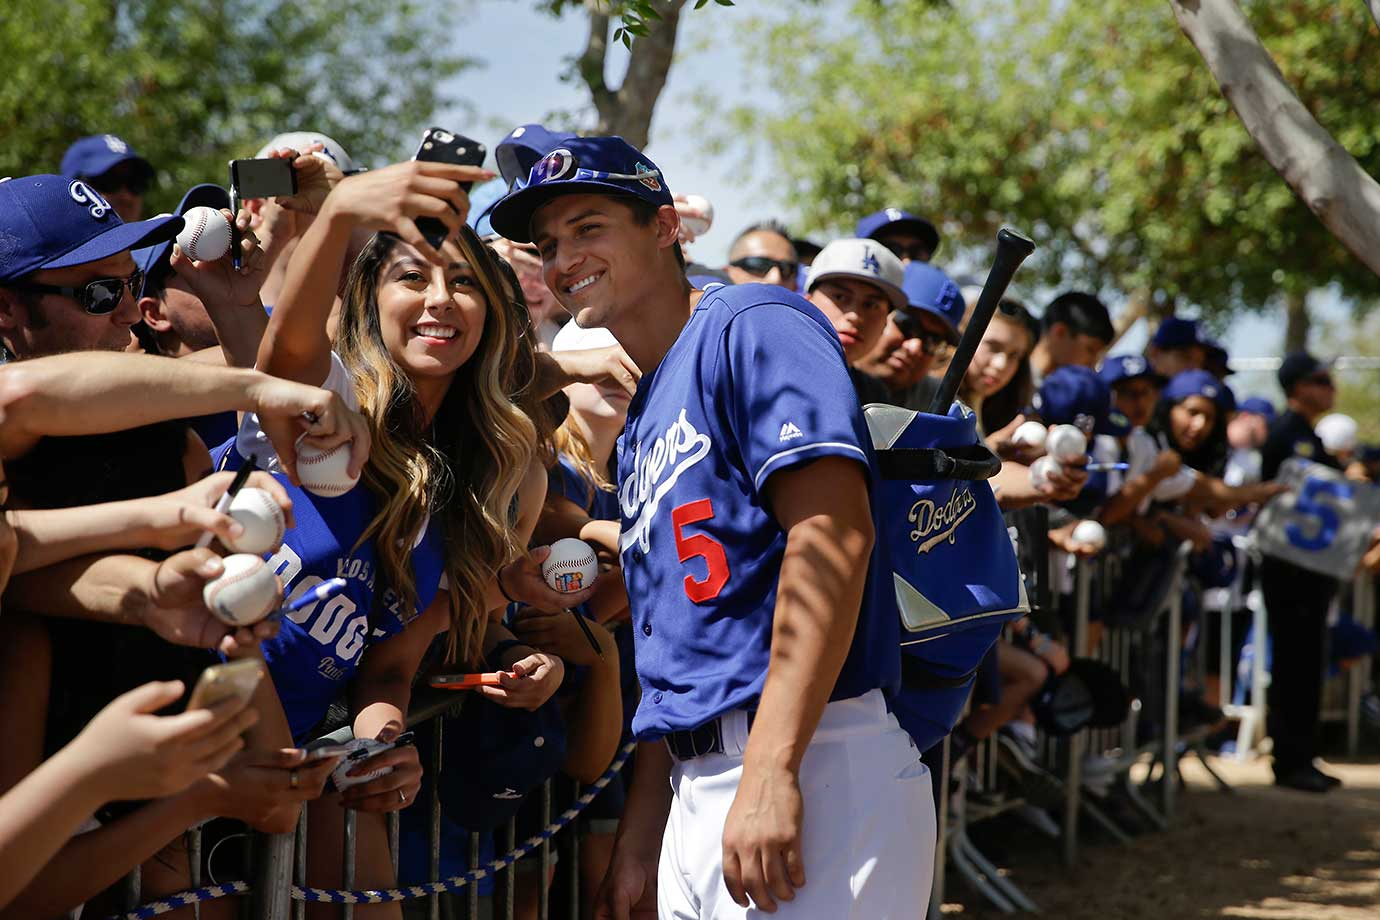 Los Angeles Dodger Corey Seager pauses for a photo with a fan before a spring training game in Phoenix.